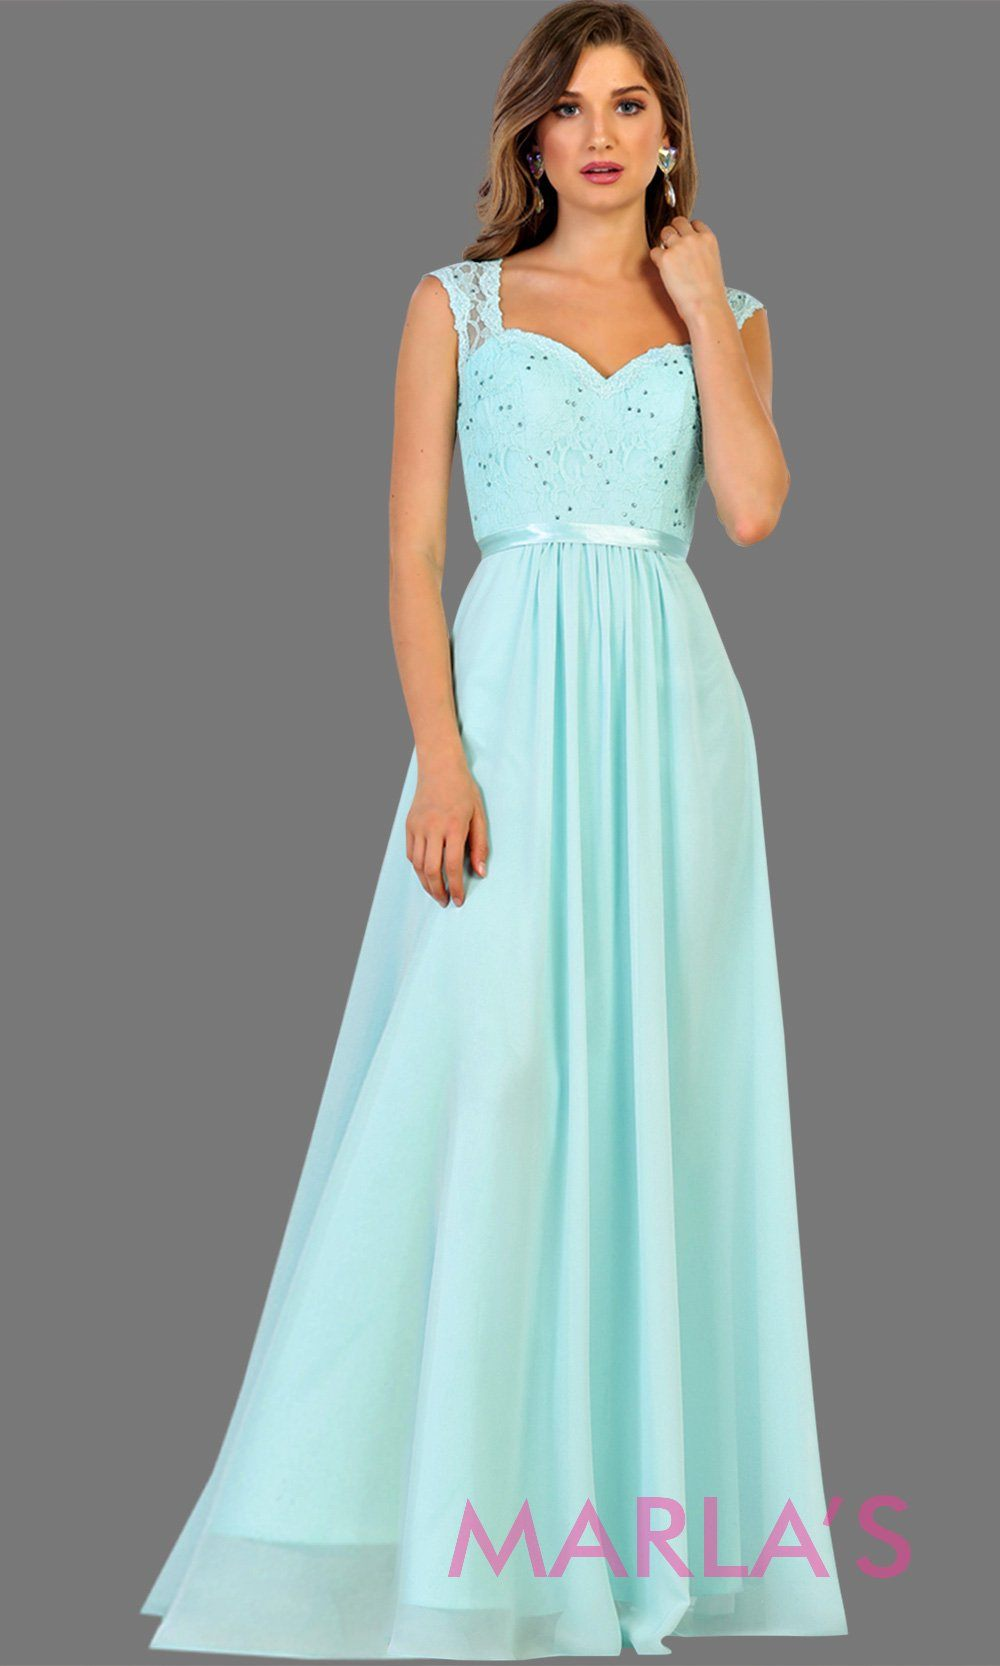 Long flowy aqua dress with lace back and cap sleeve. It has a matching satin band. Perfect for light blue bridesmaids, prom, wedding guest dress, formal gown, destination wedding, long party dress, western dress, damas. Available in Plus Sizes.